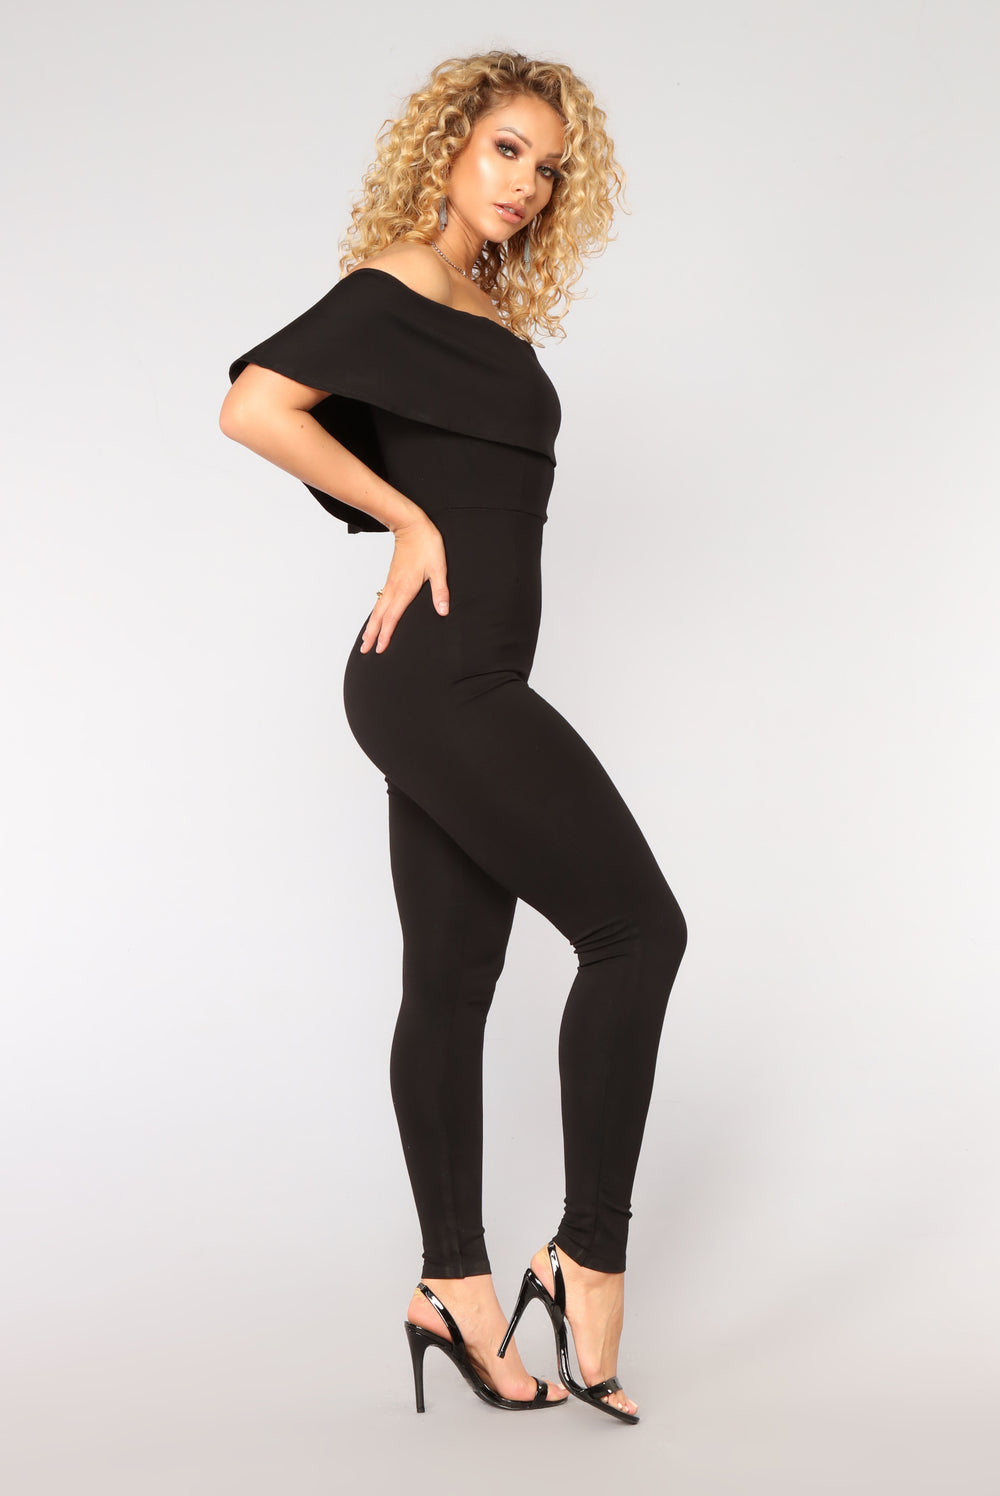 Announce Flounce Jumpsuit - Black